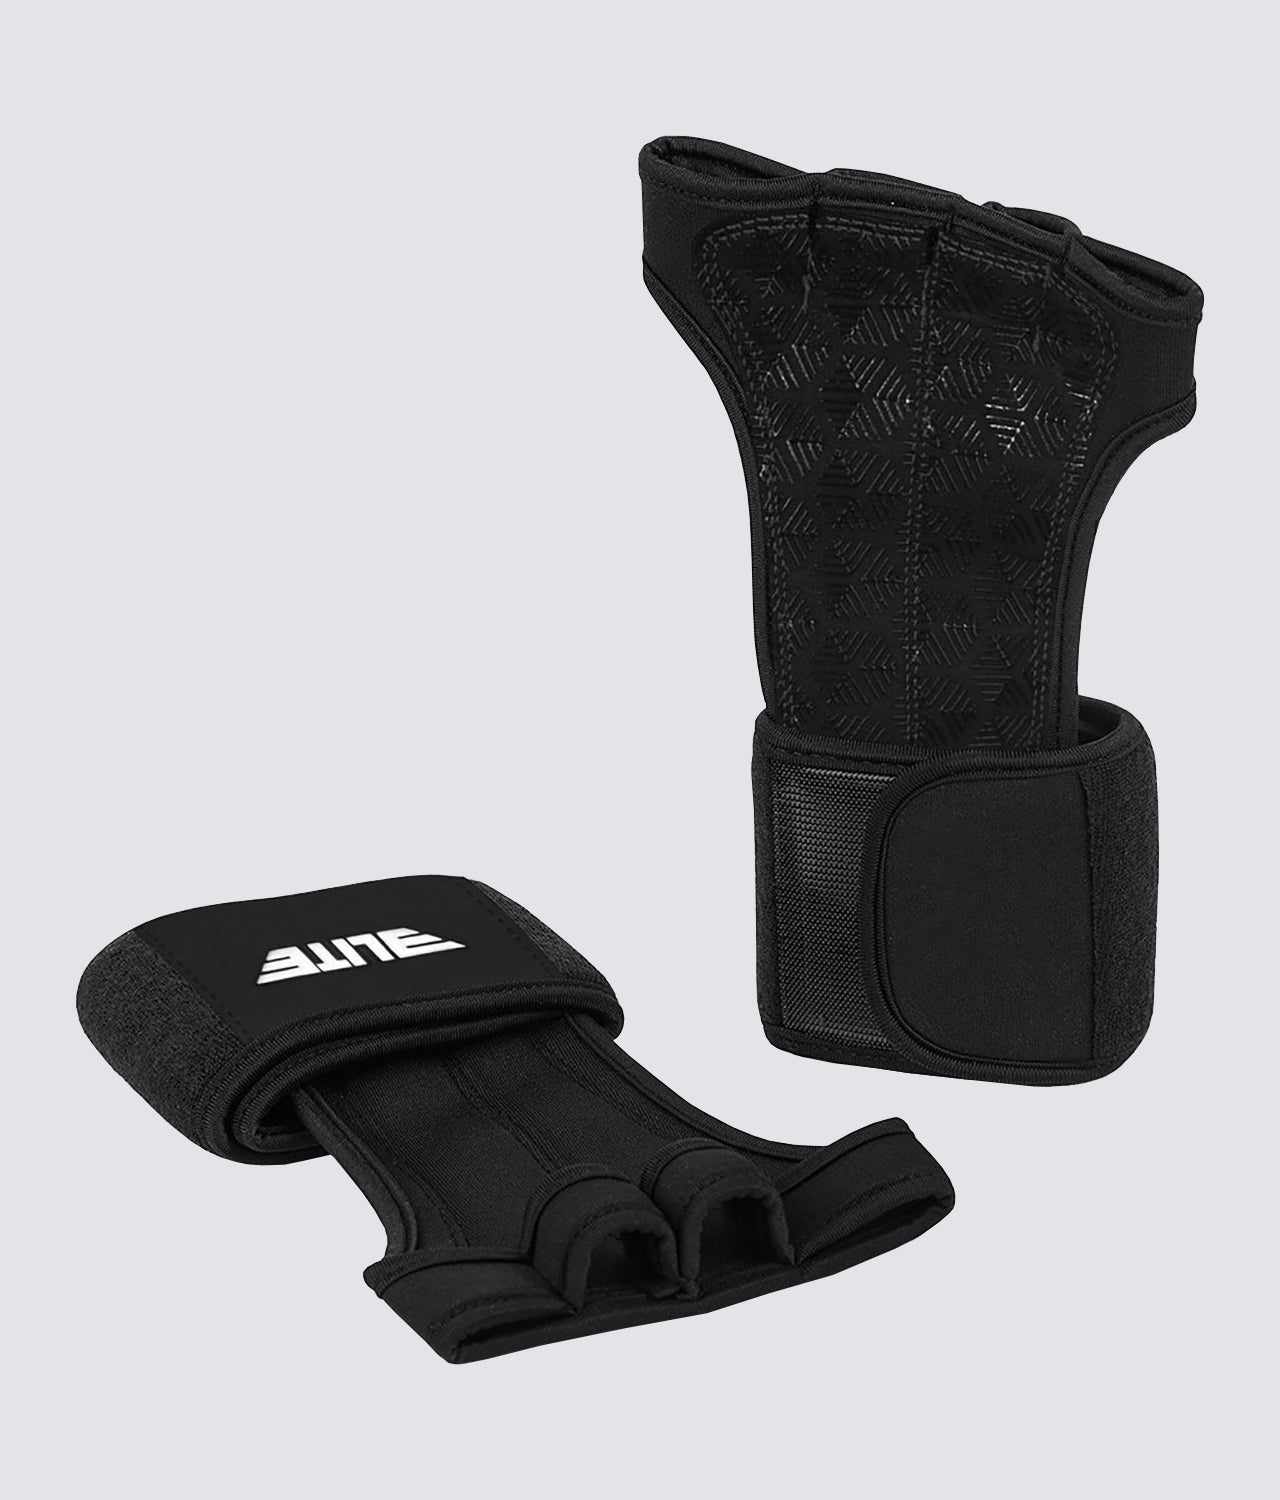 Elite Sports Lightweight Cross Training Gloves with Wrist Straps